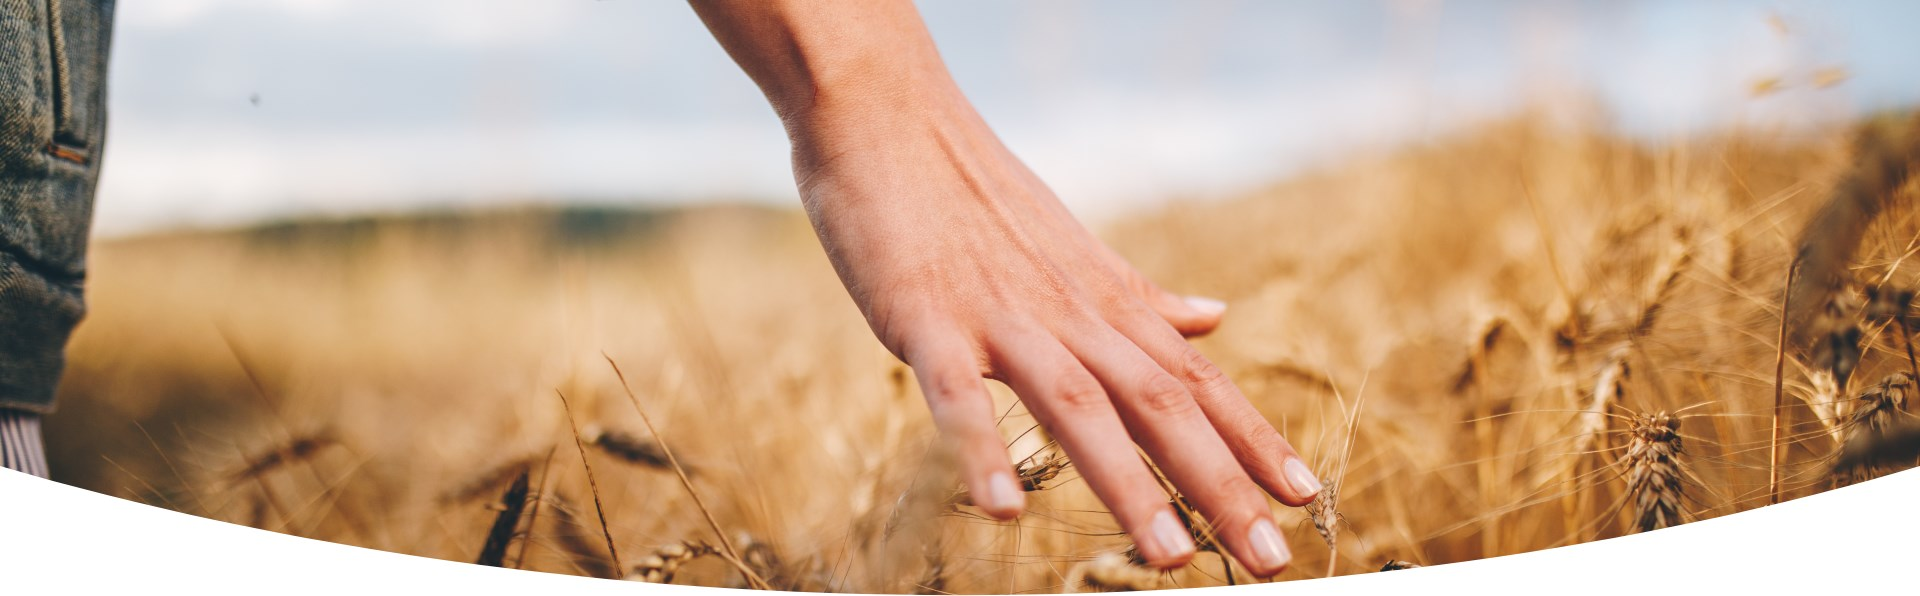 Woman's hand touches the stalks of corn in a cornfield.